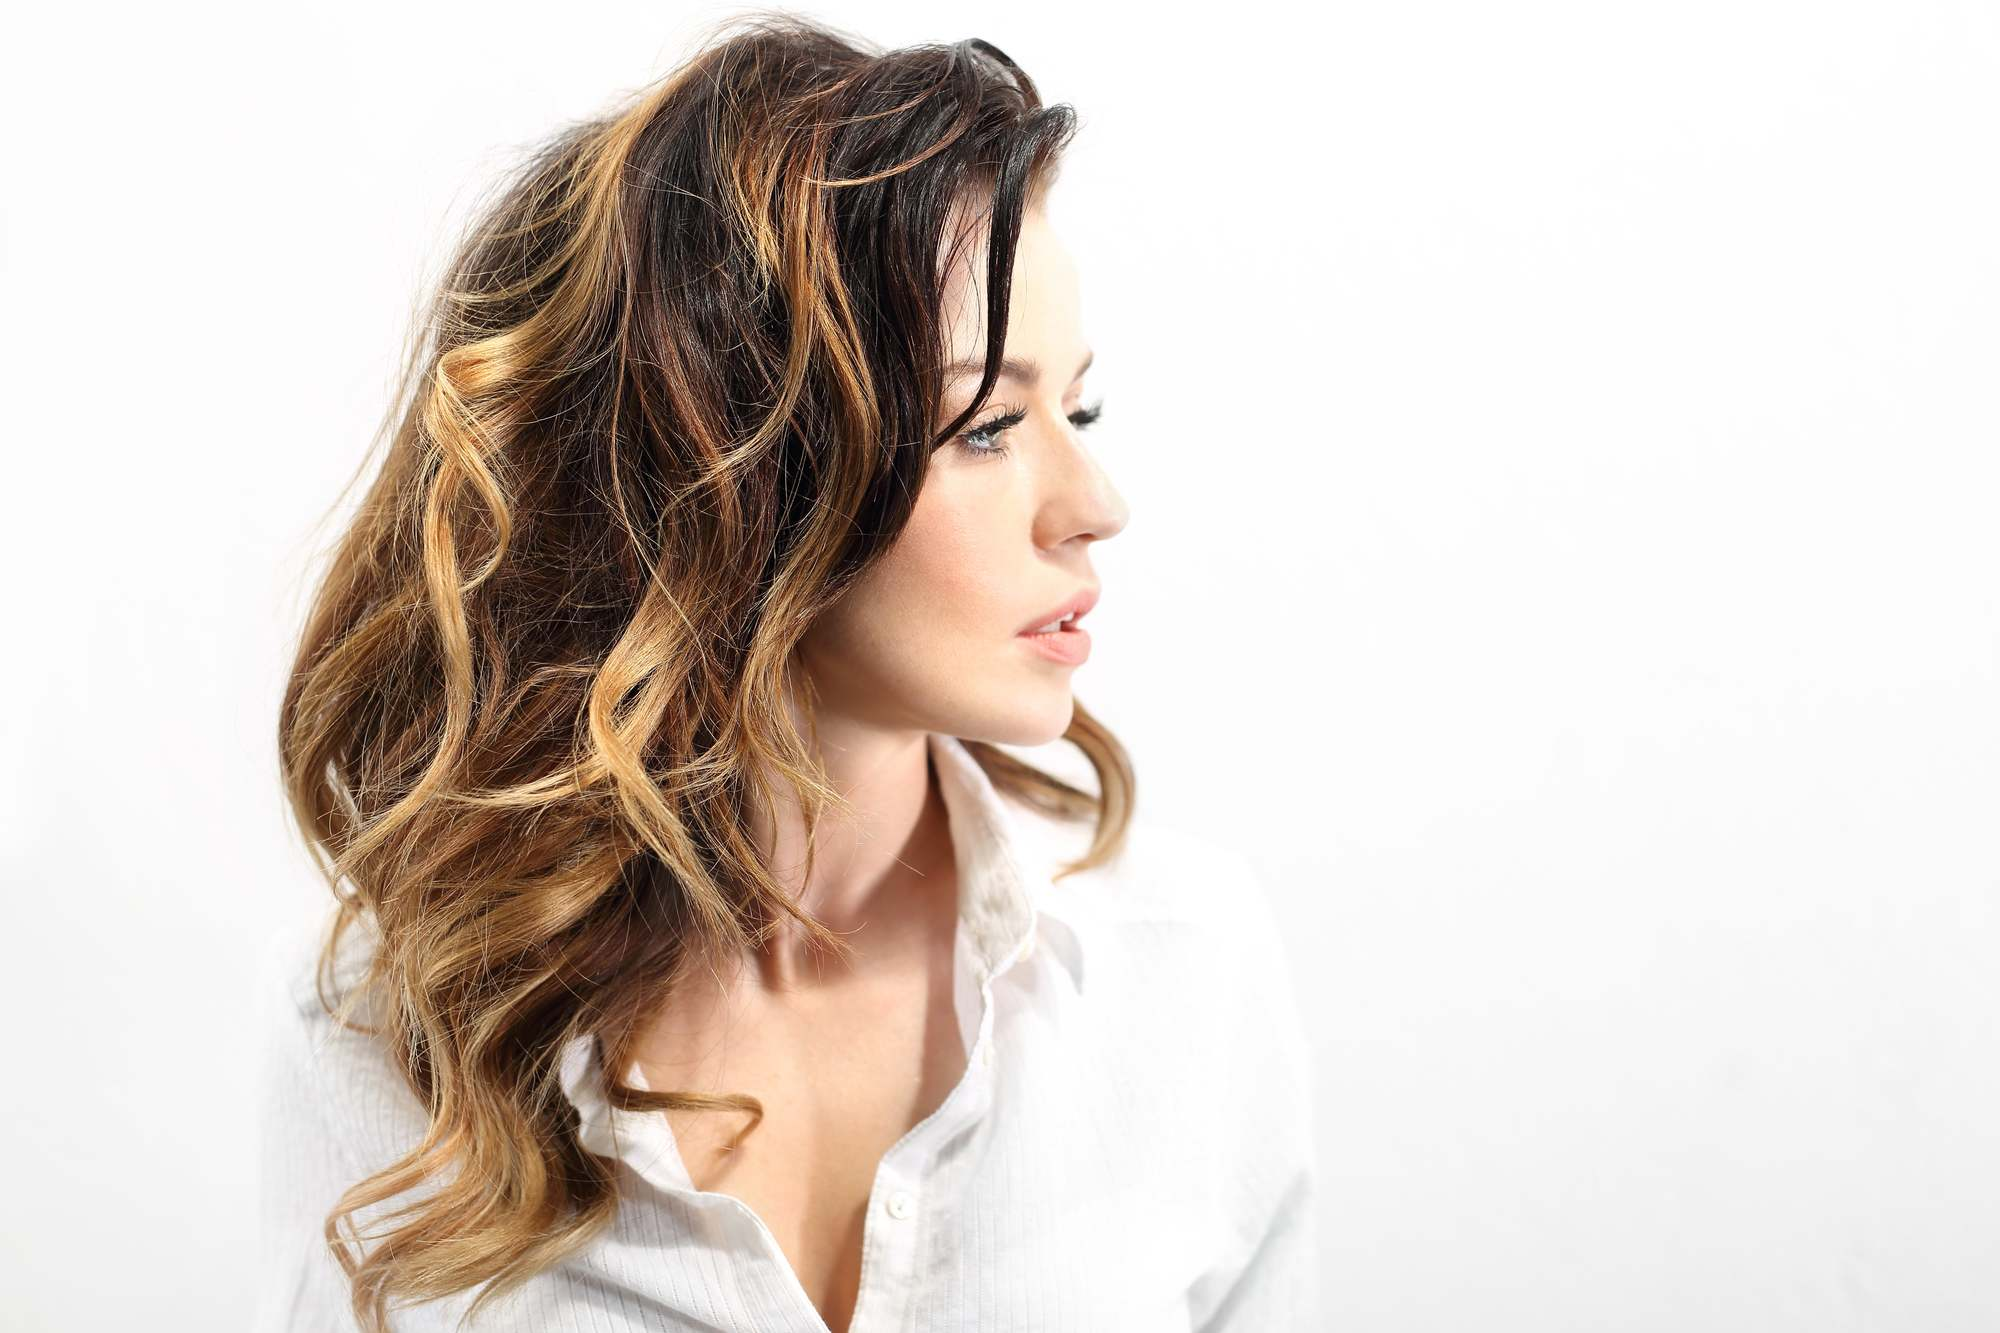 Style Layered Hair By Adding In Balayage Highlights